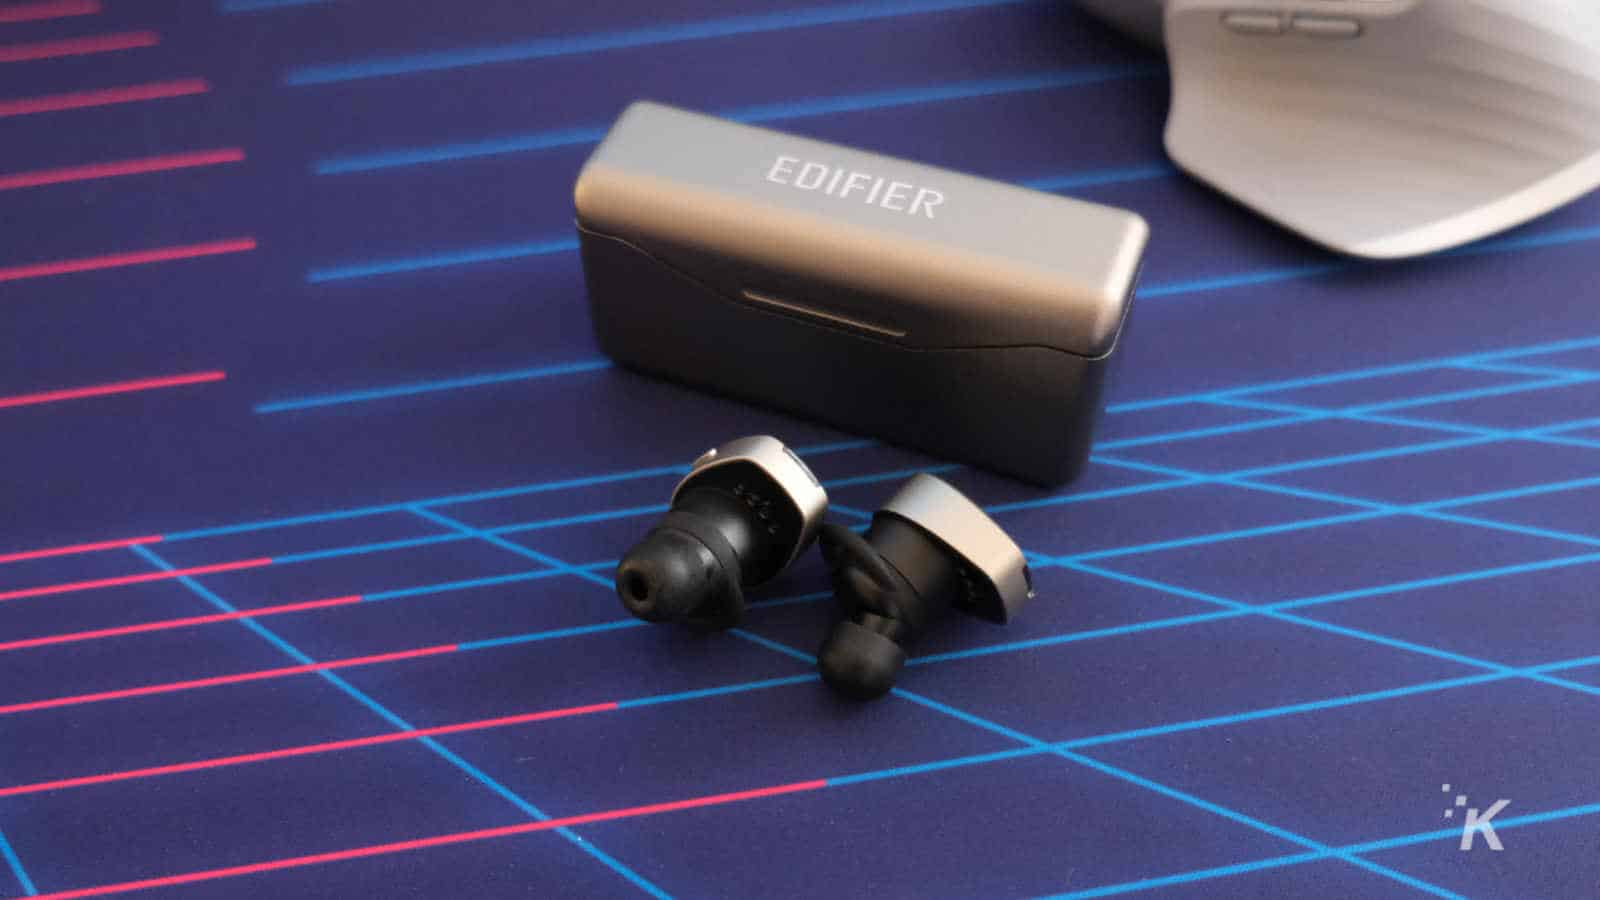 active noise-canceling earbuds